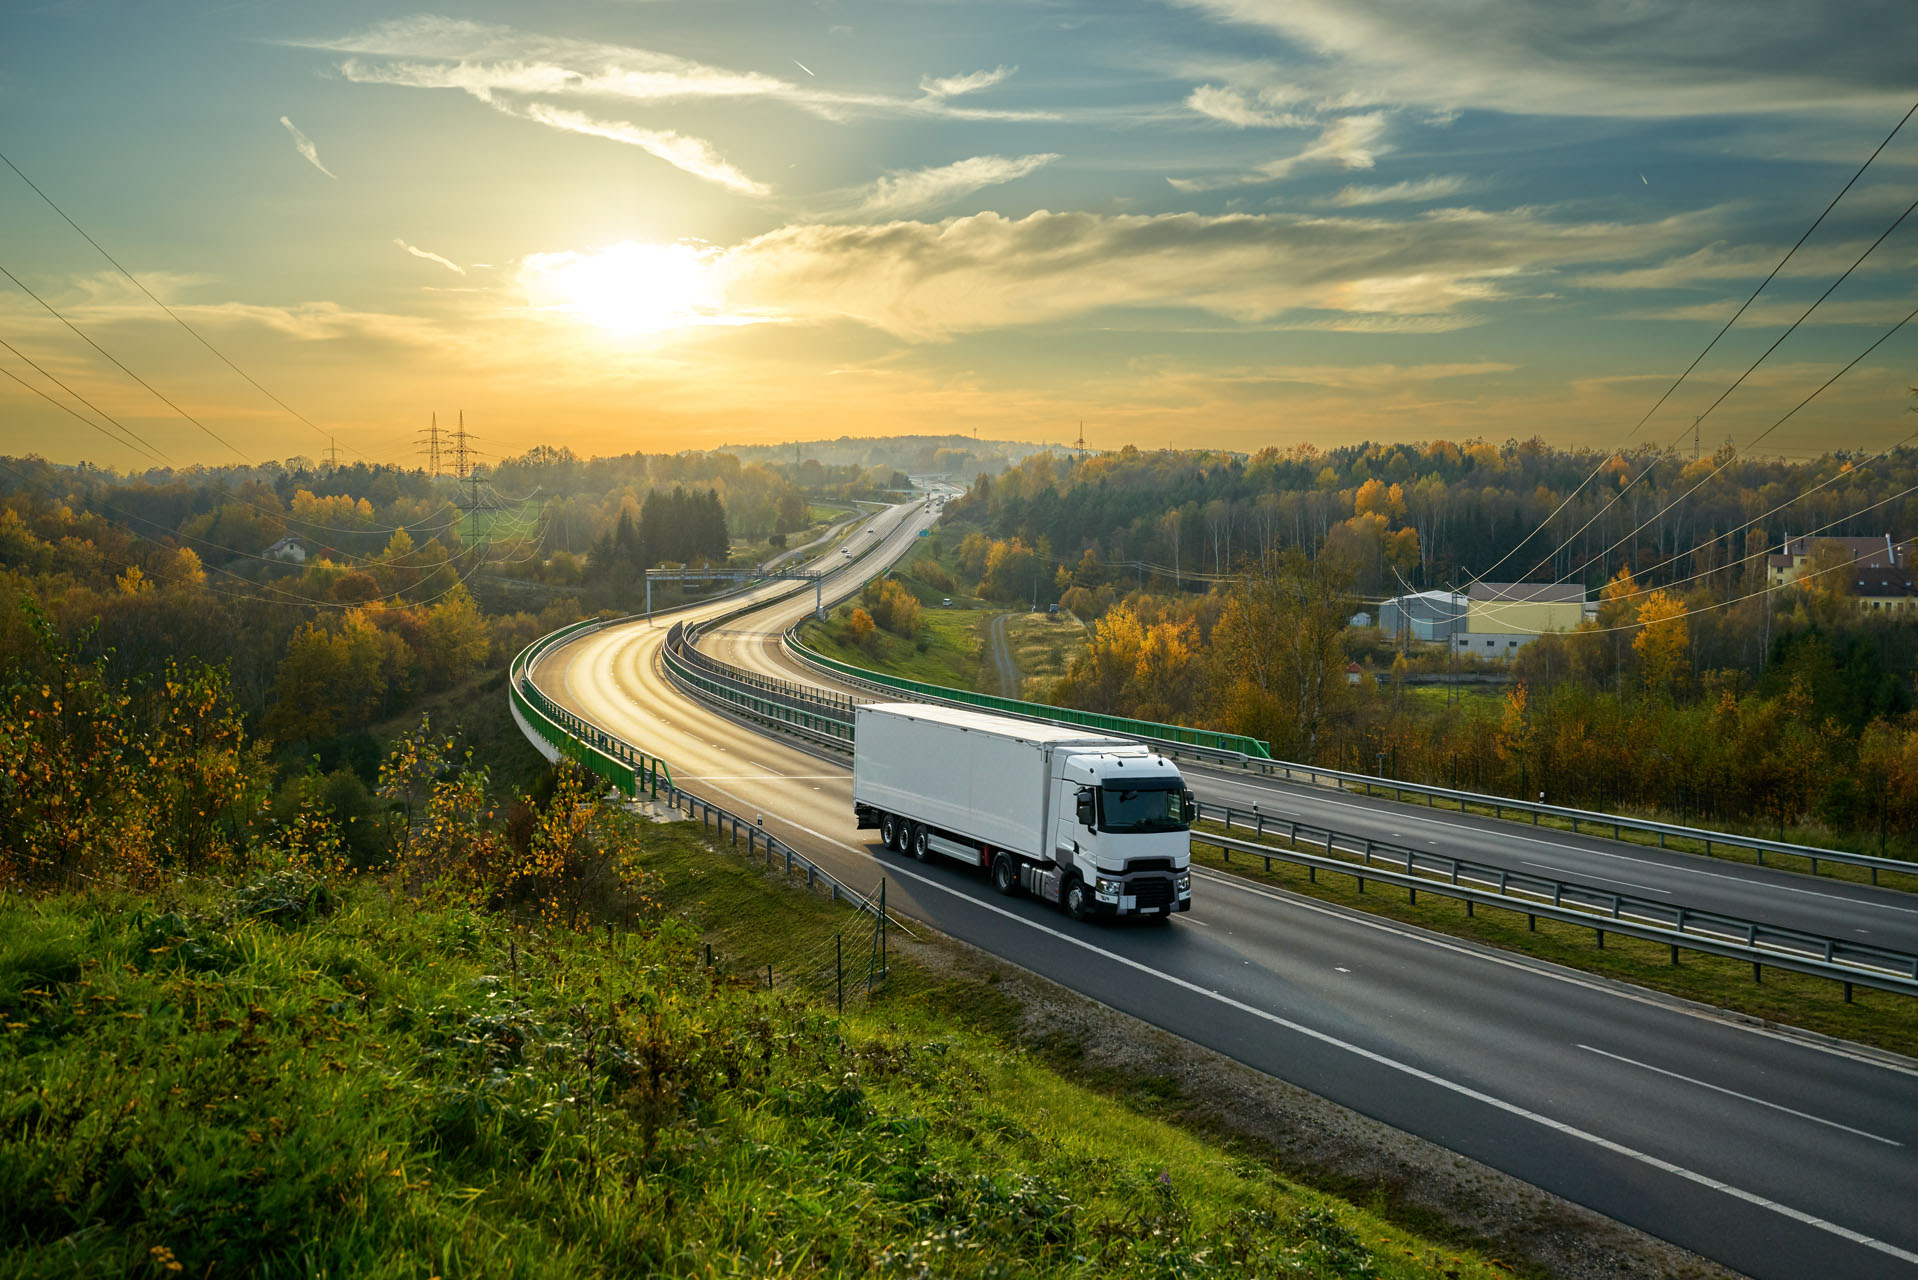 White truck driving on the highway winding through forested landscape in autumn colors at sunset